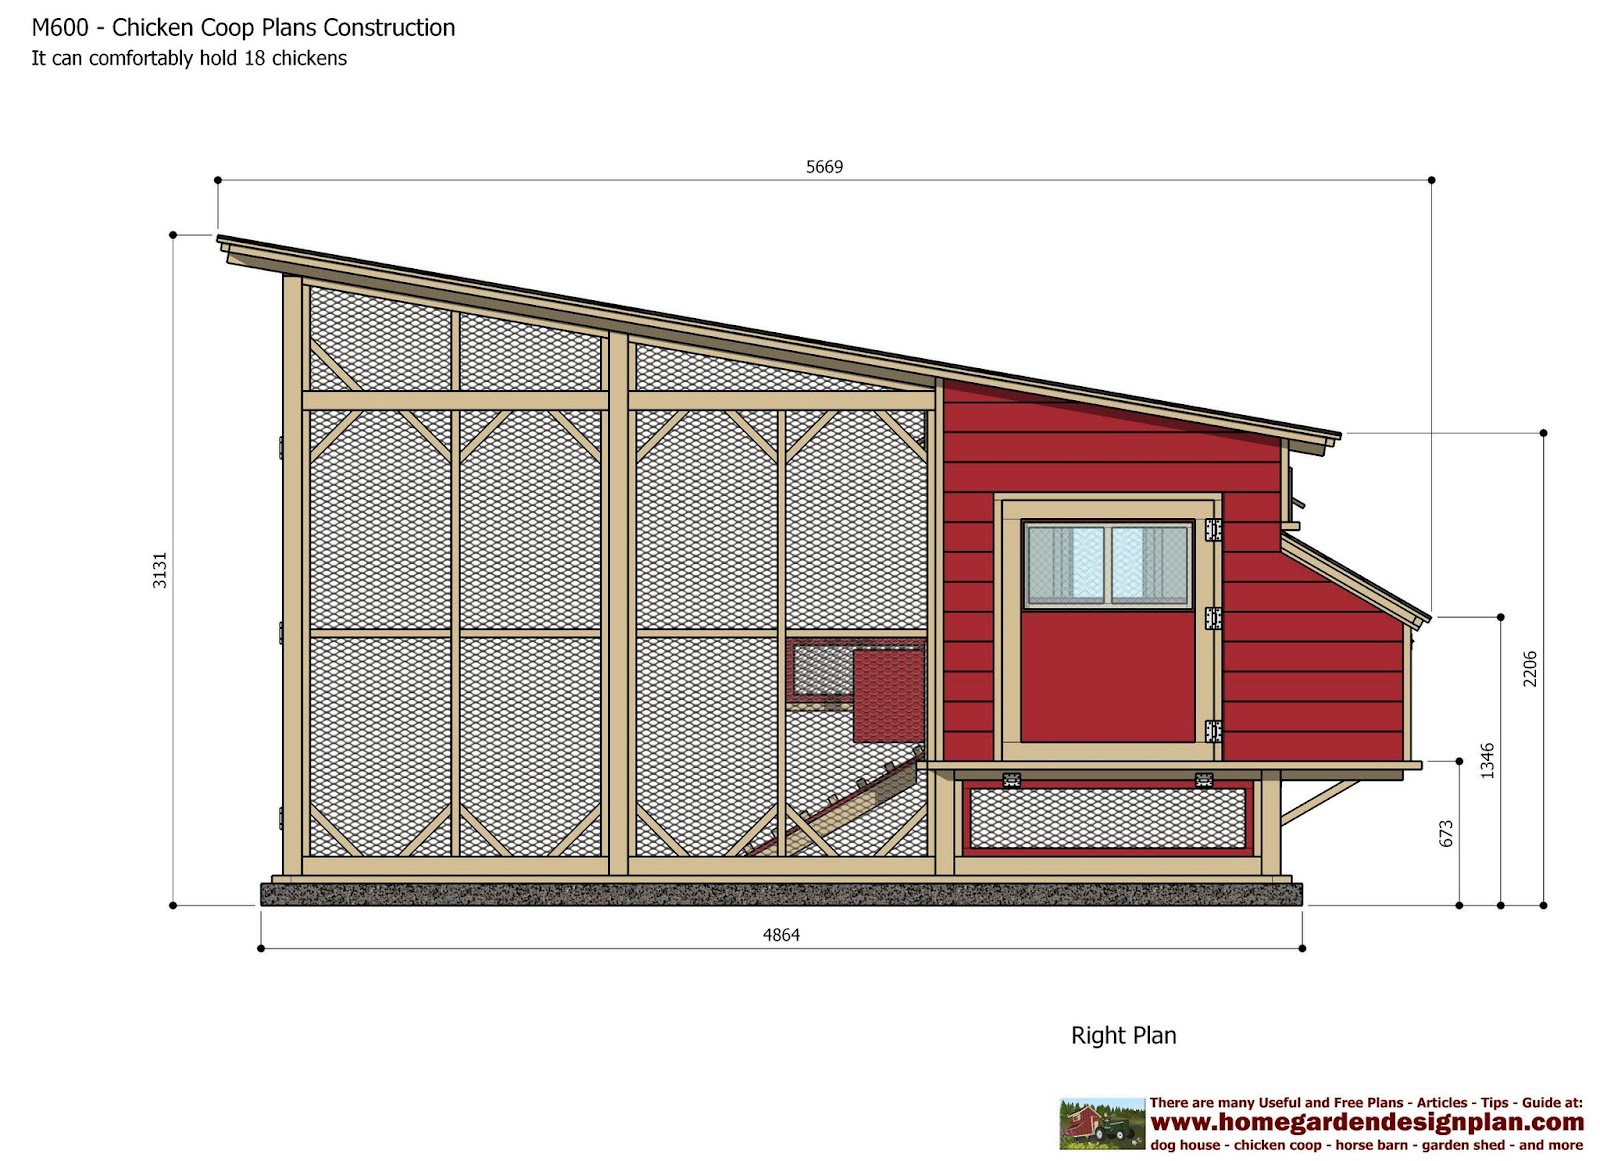 Home garden plans m600 chicken coop plans construction for Free coop plans